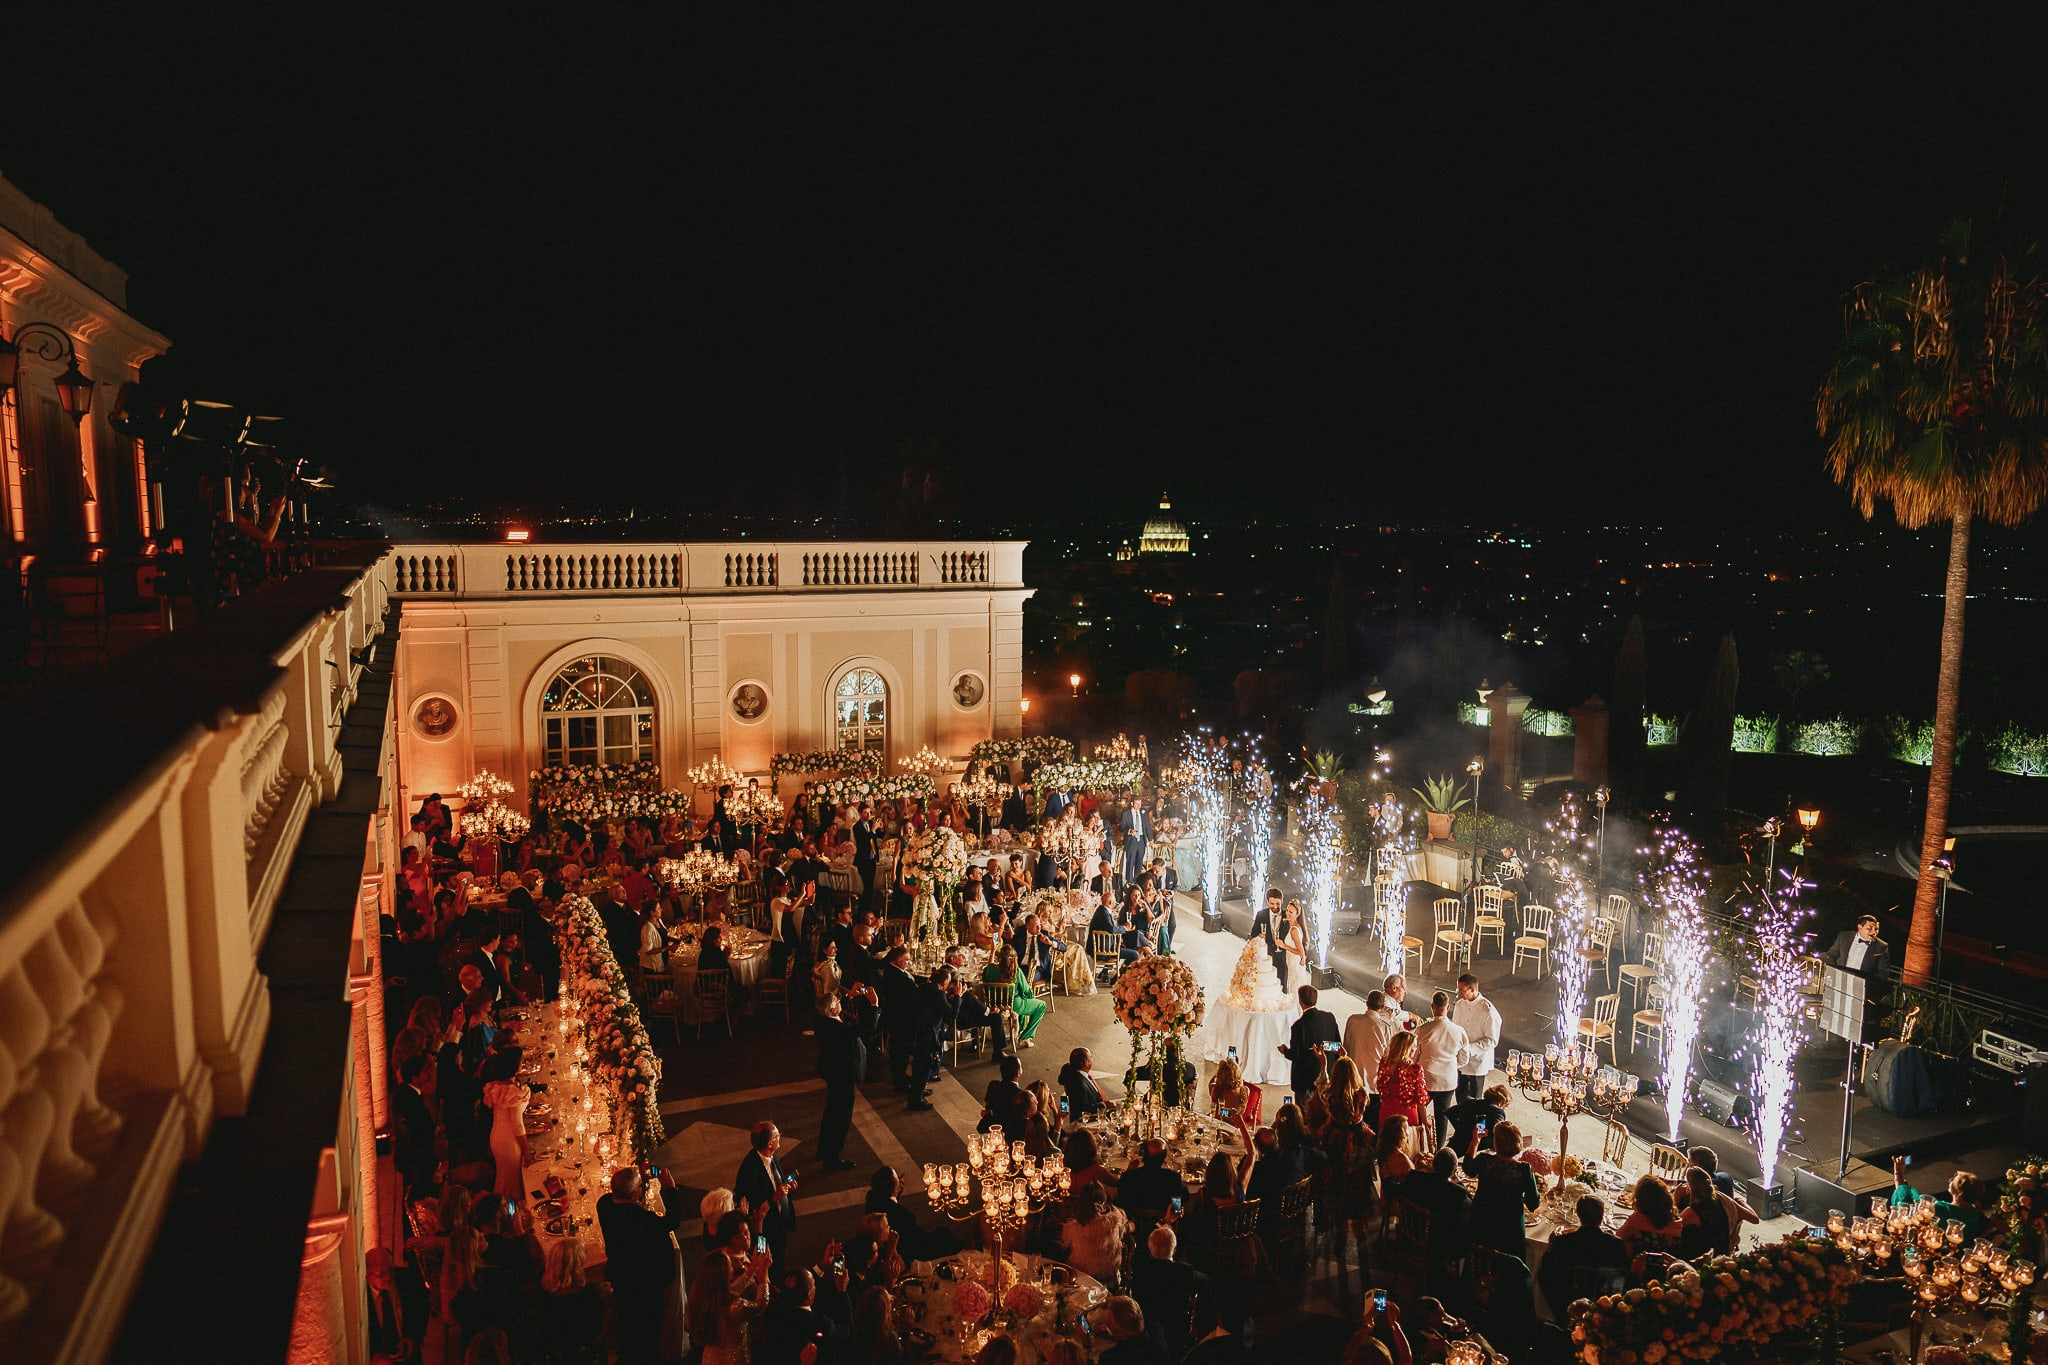 wedding photographer rome immortalized the spectacular cake cutting at villa miani with fireworks and the lights of the eternal city in the background